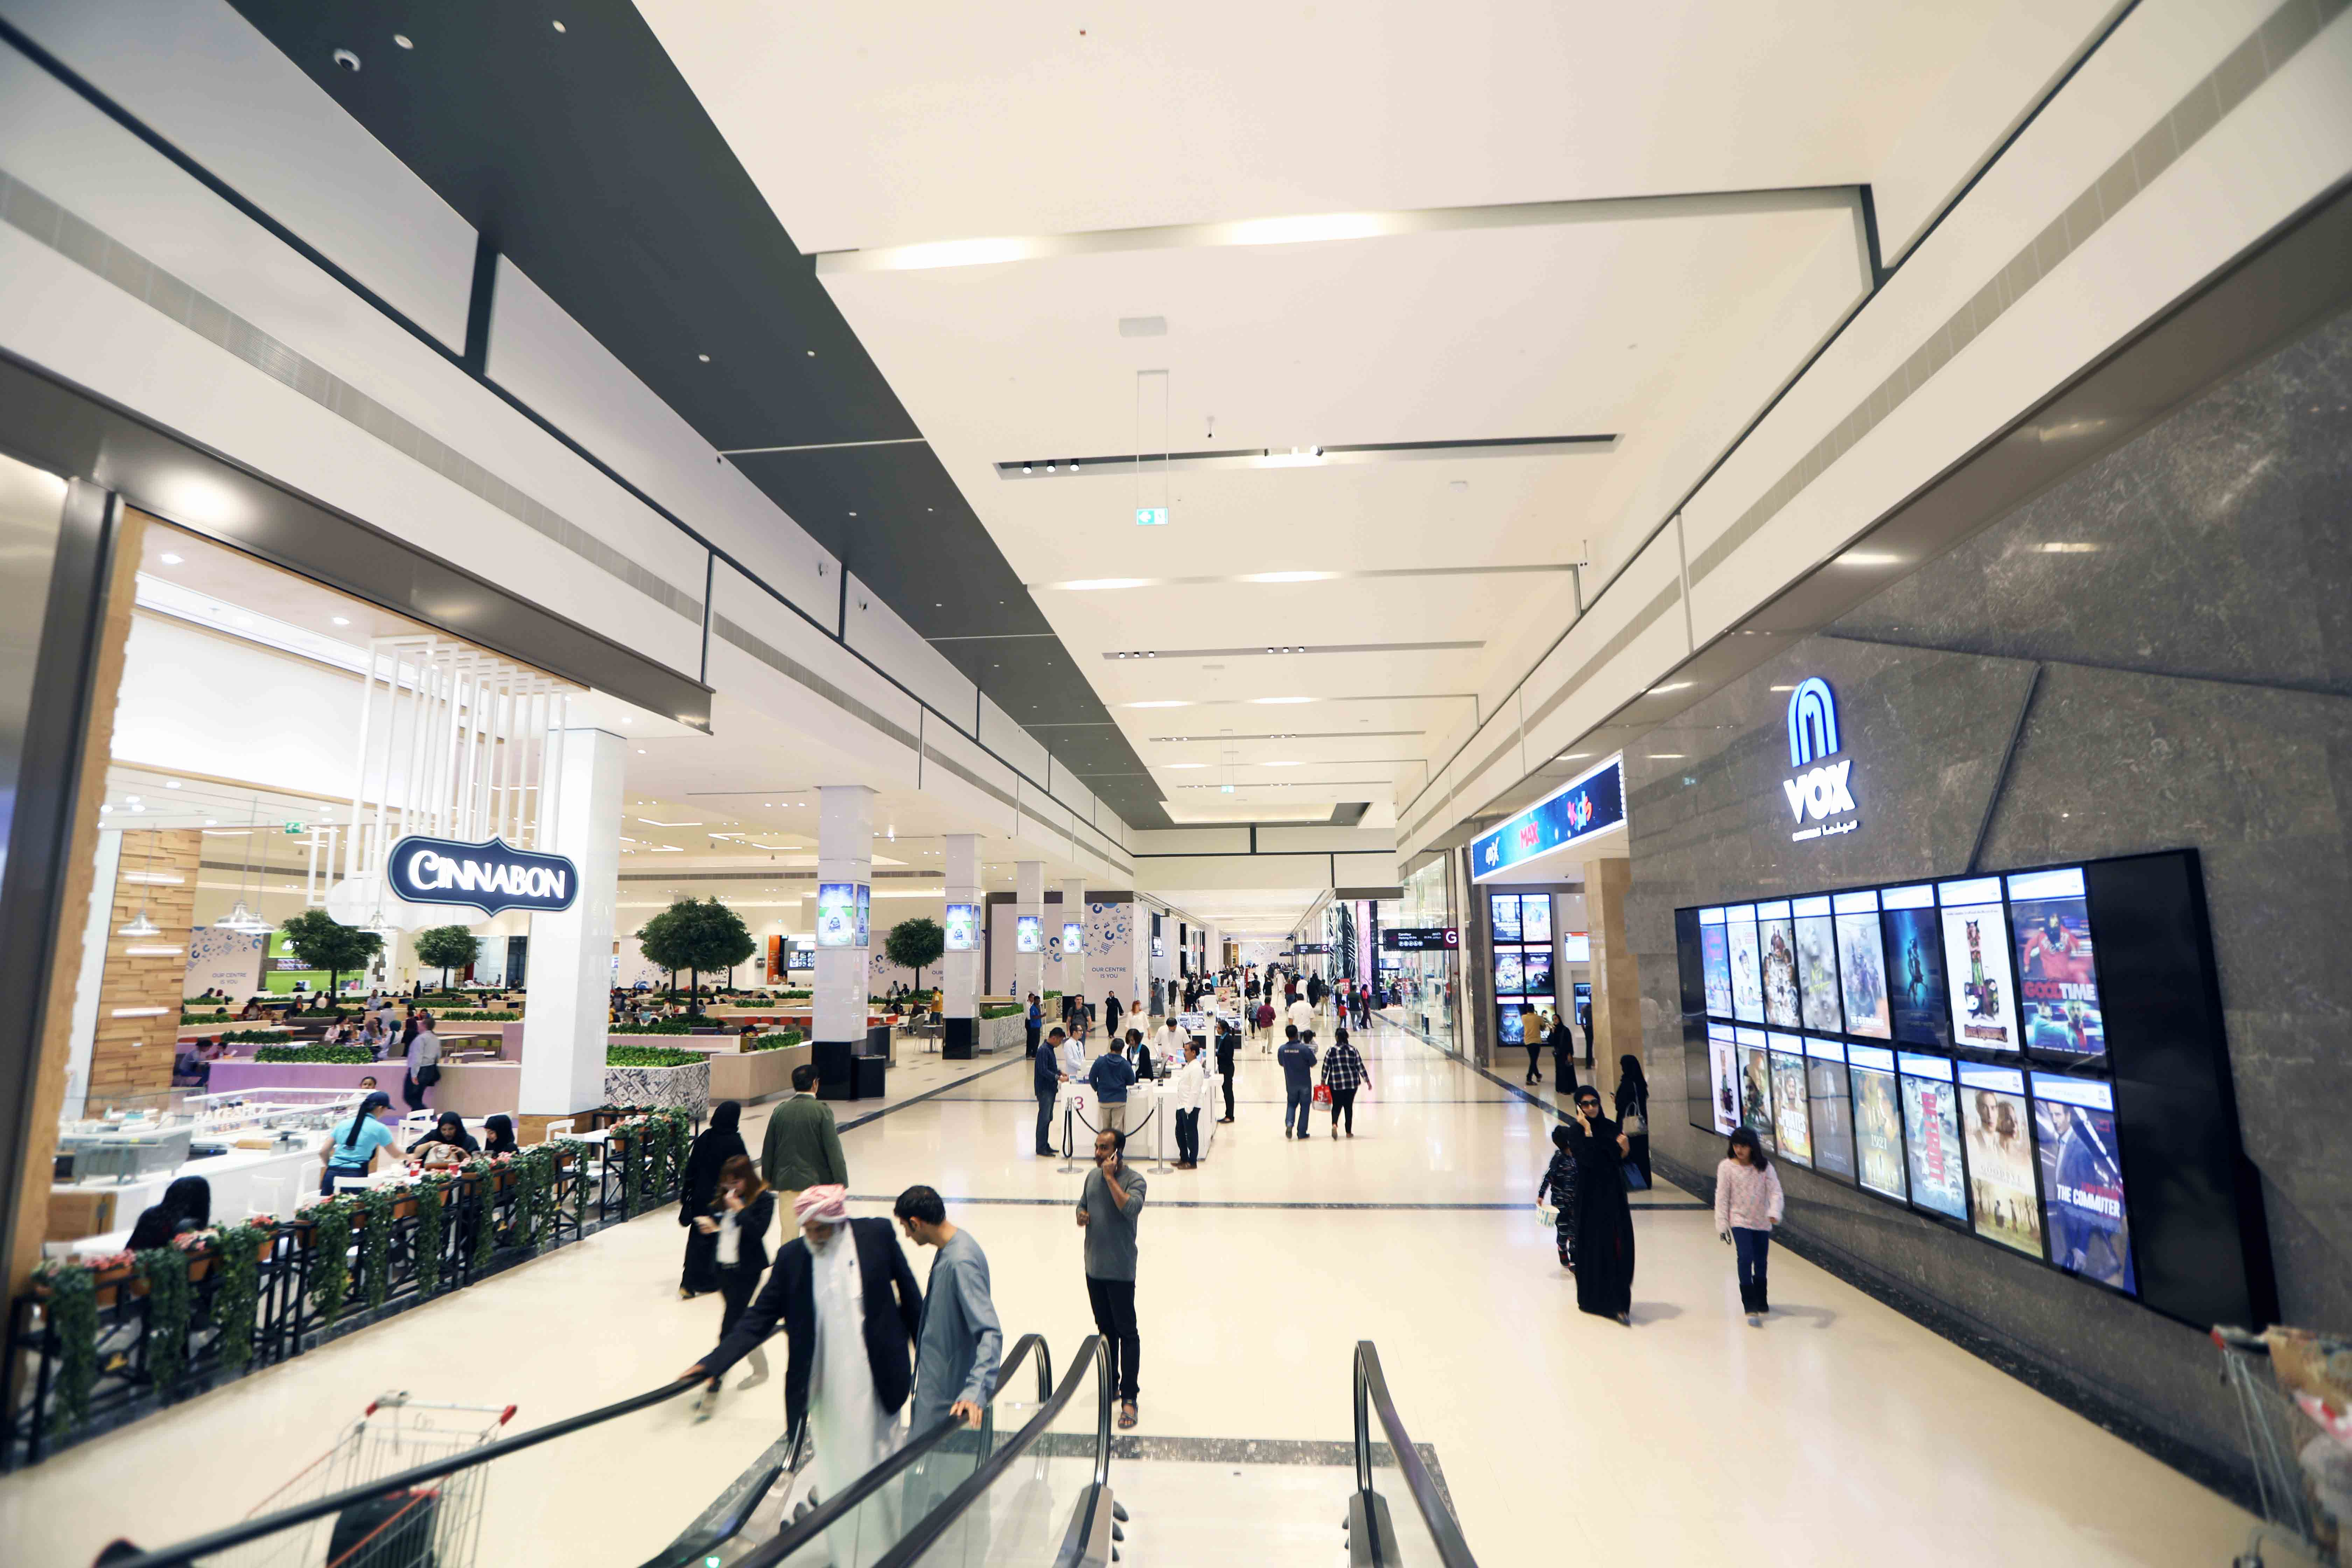 Maf Invests 175m In City Centre Ajman Expansion Middle